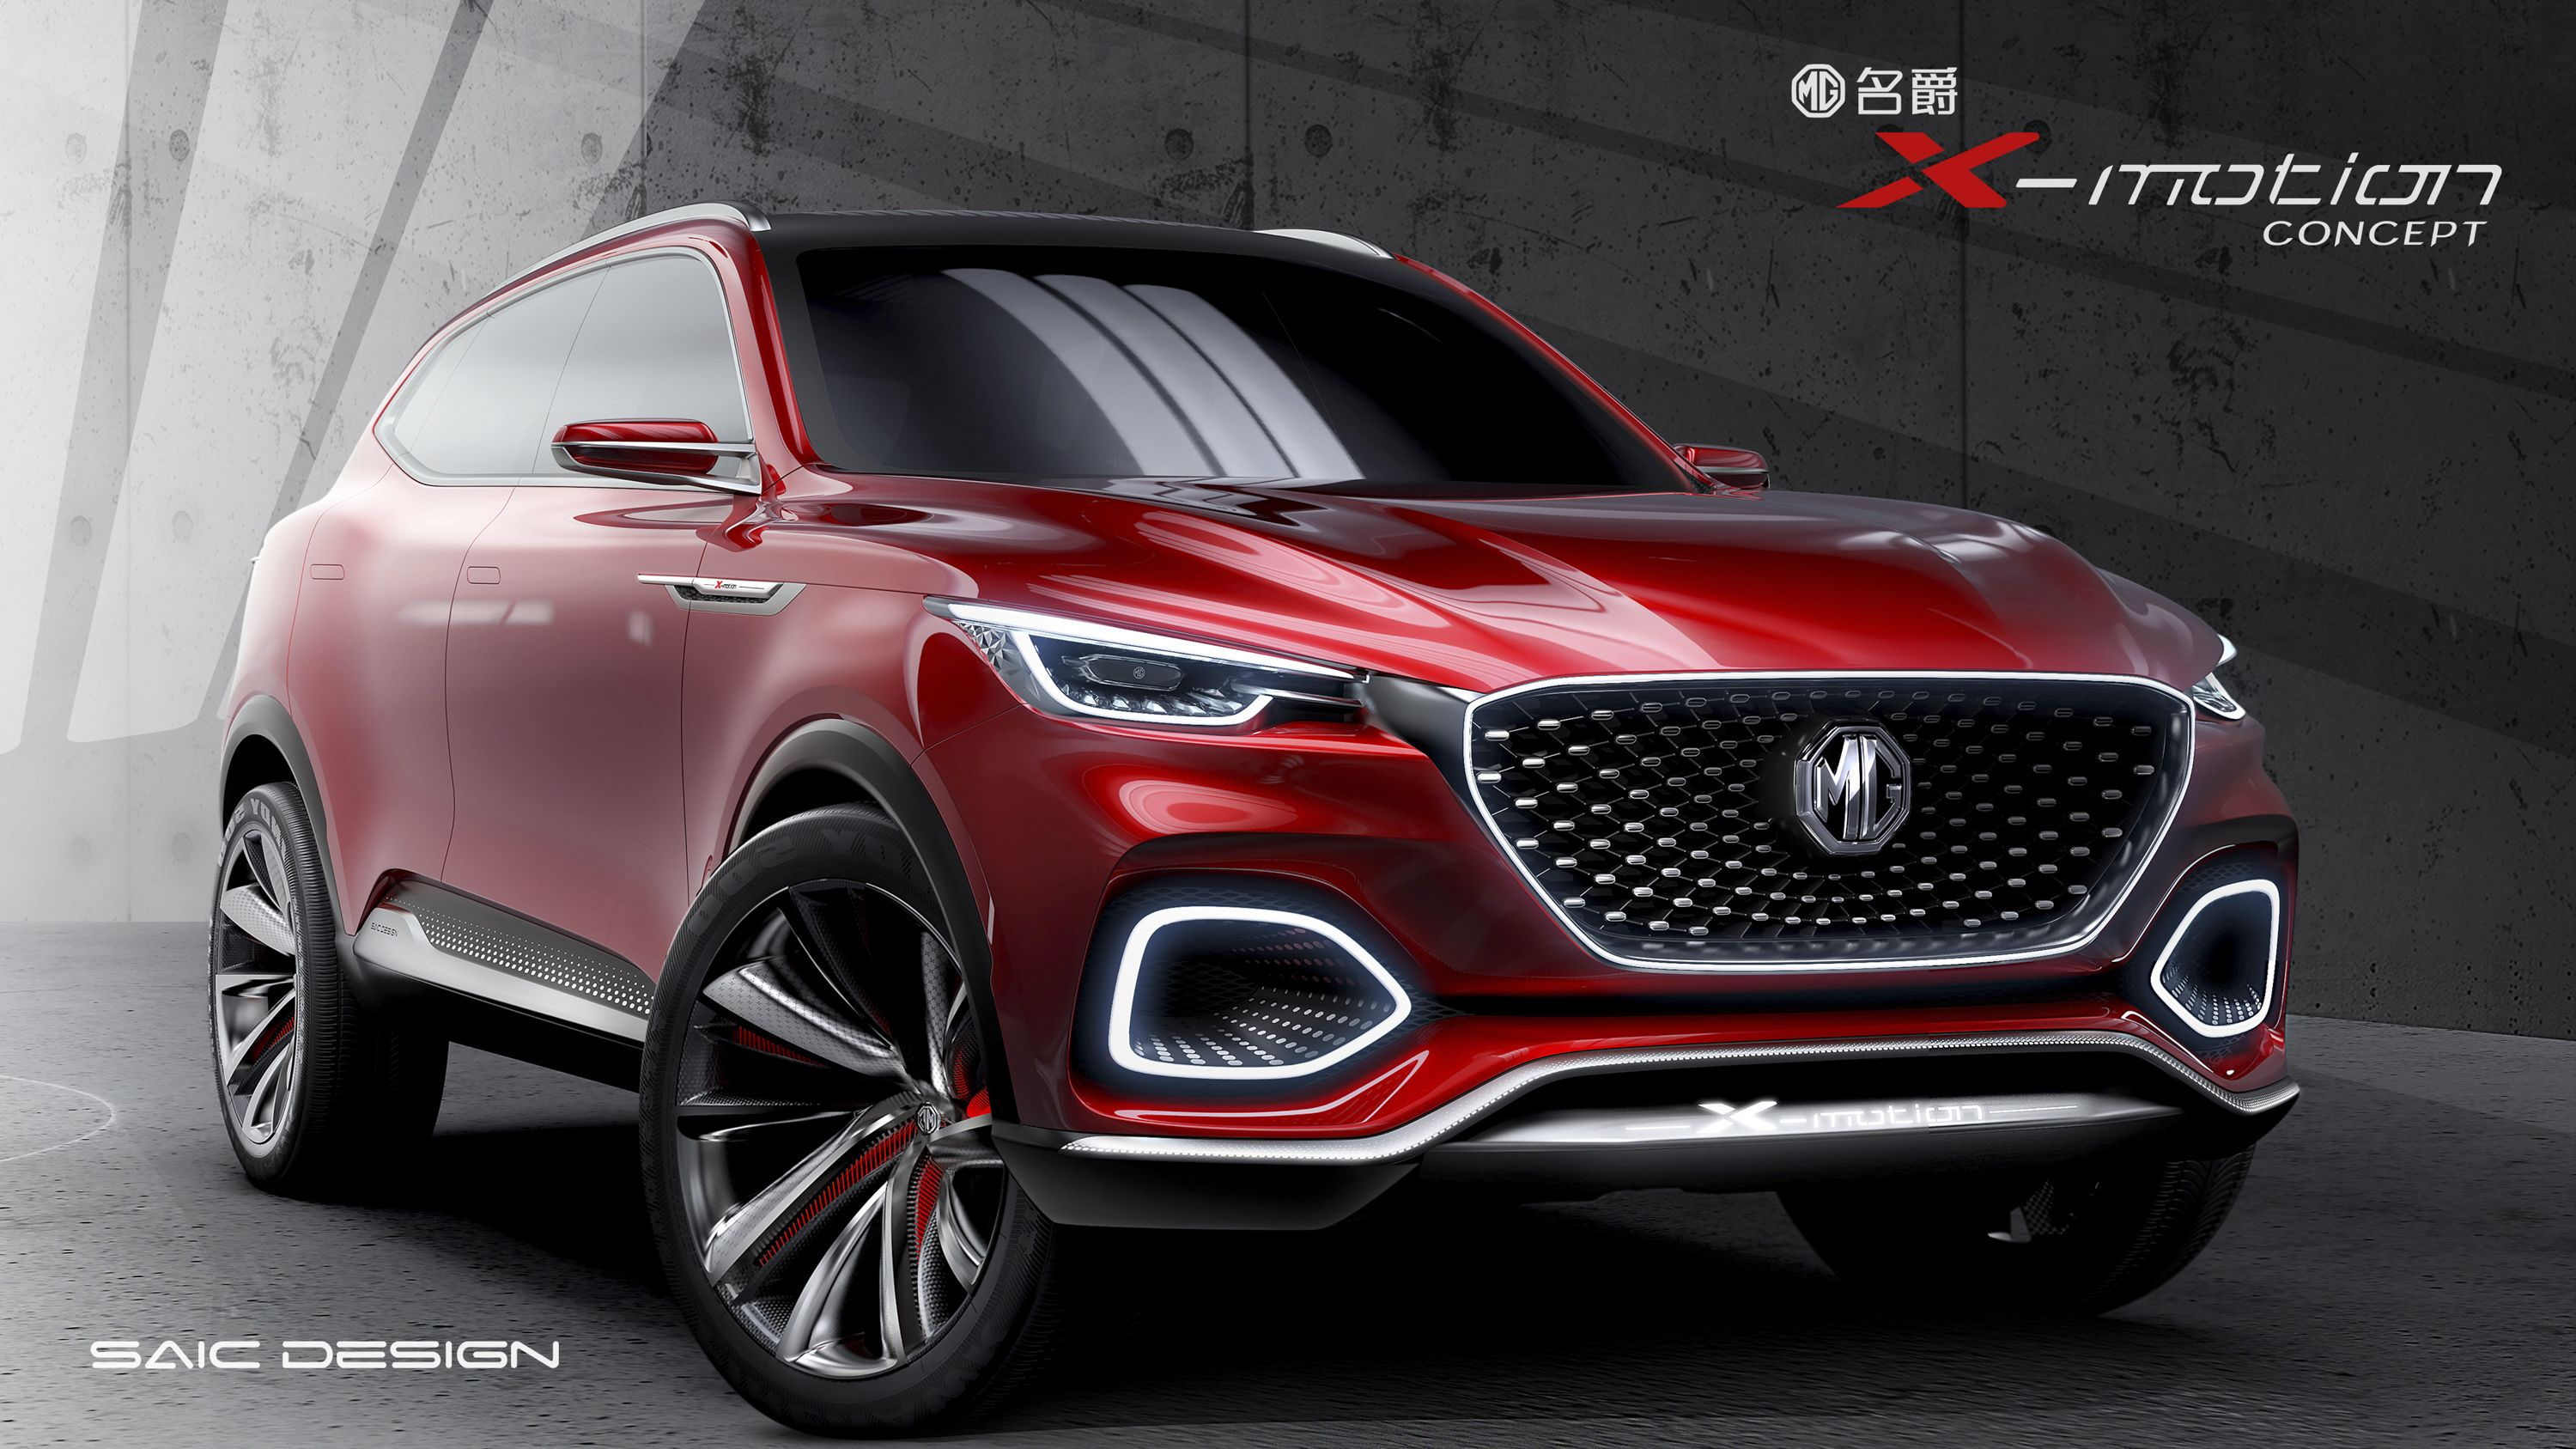 The Mg X Motion Concept Looks Like The Offspring Of A Mercedes Glc